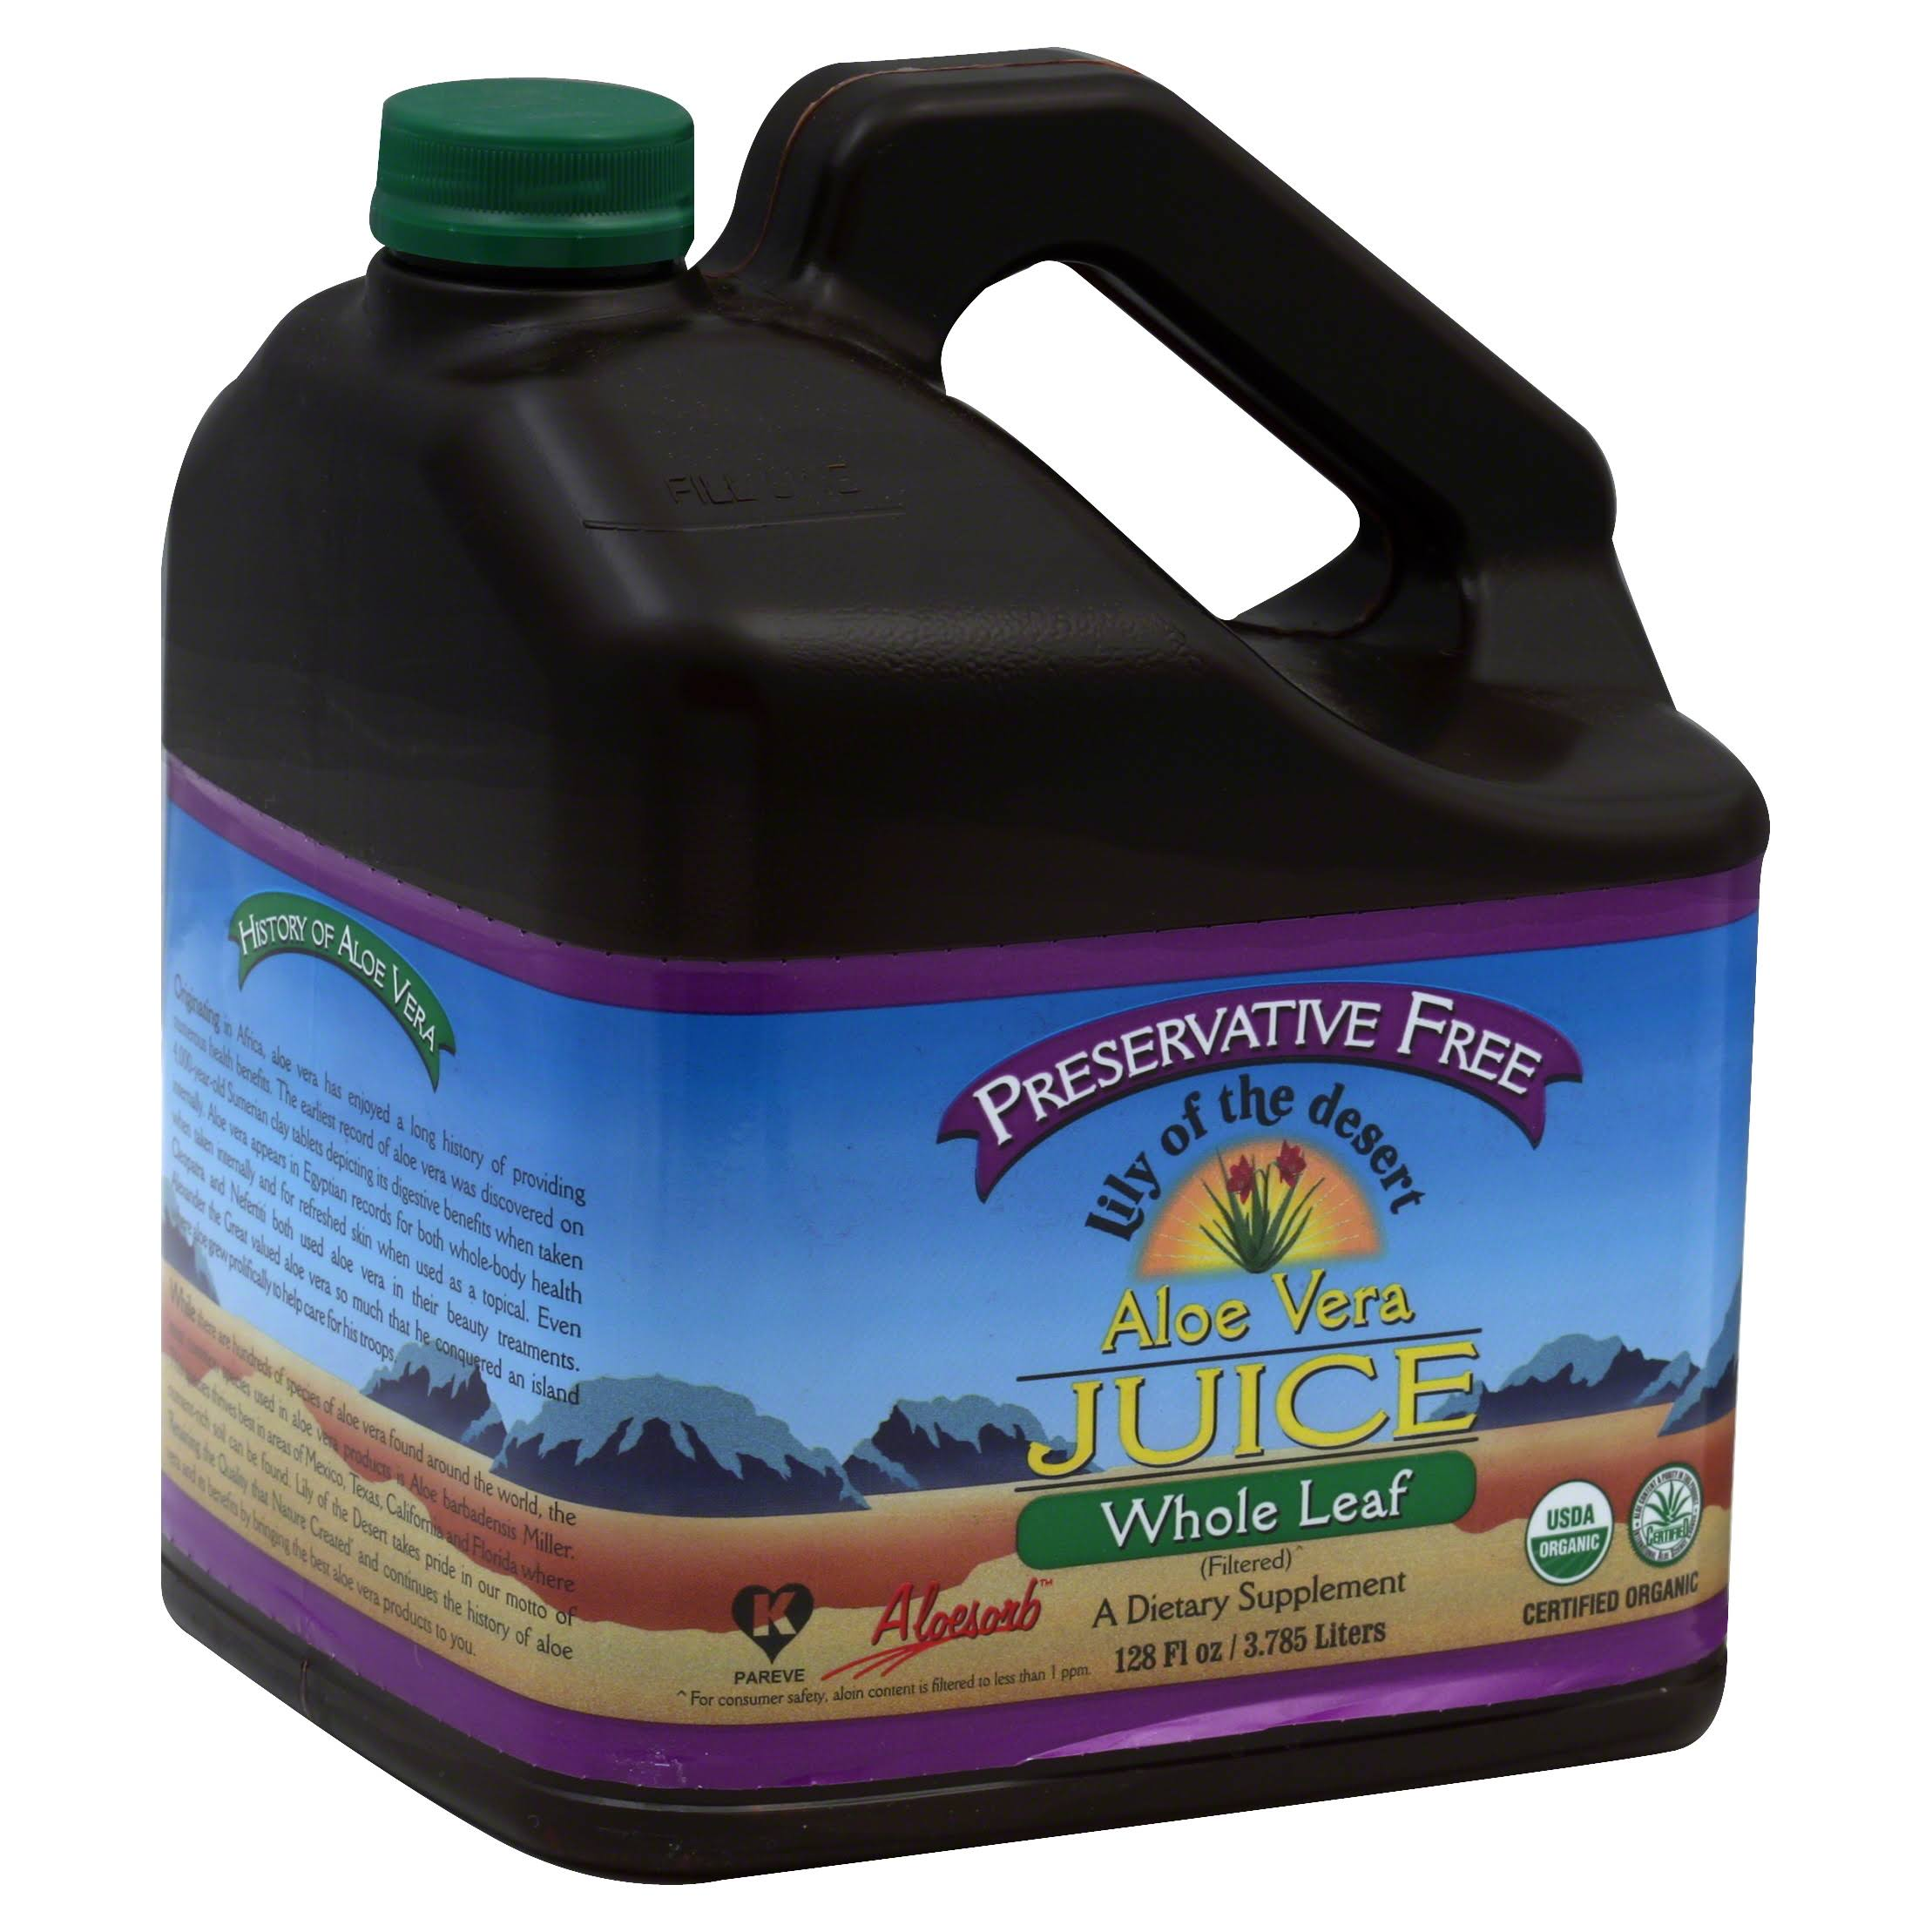 Lily Of The Desert Whole Leaf Aloe Vera Juice - 1gal